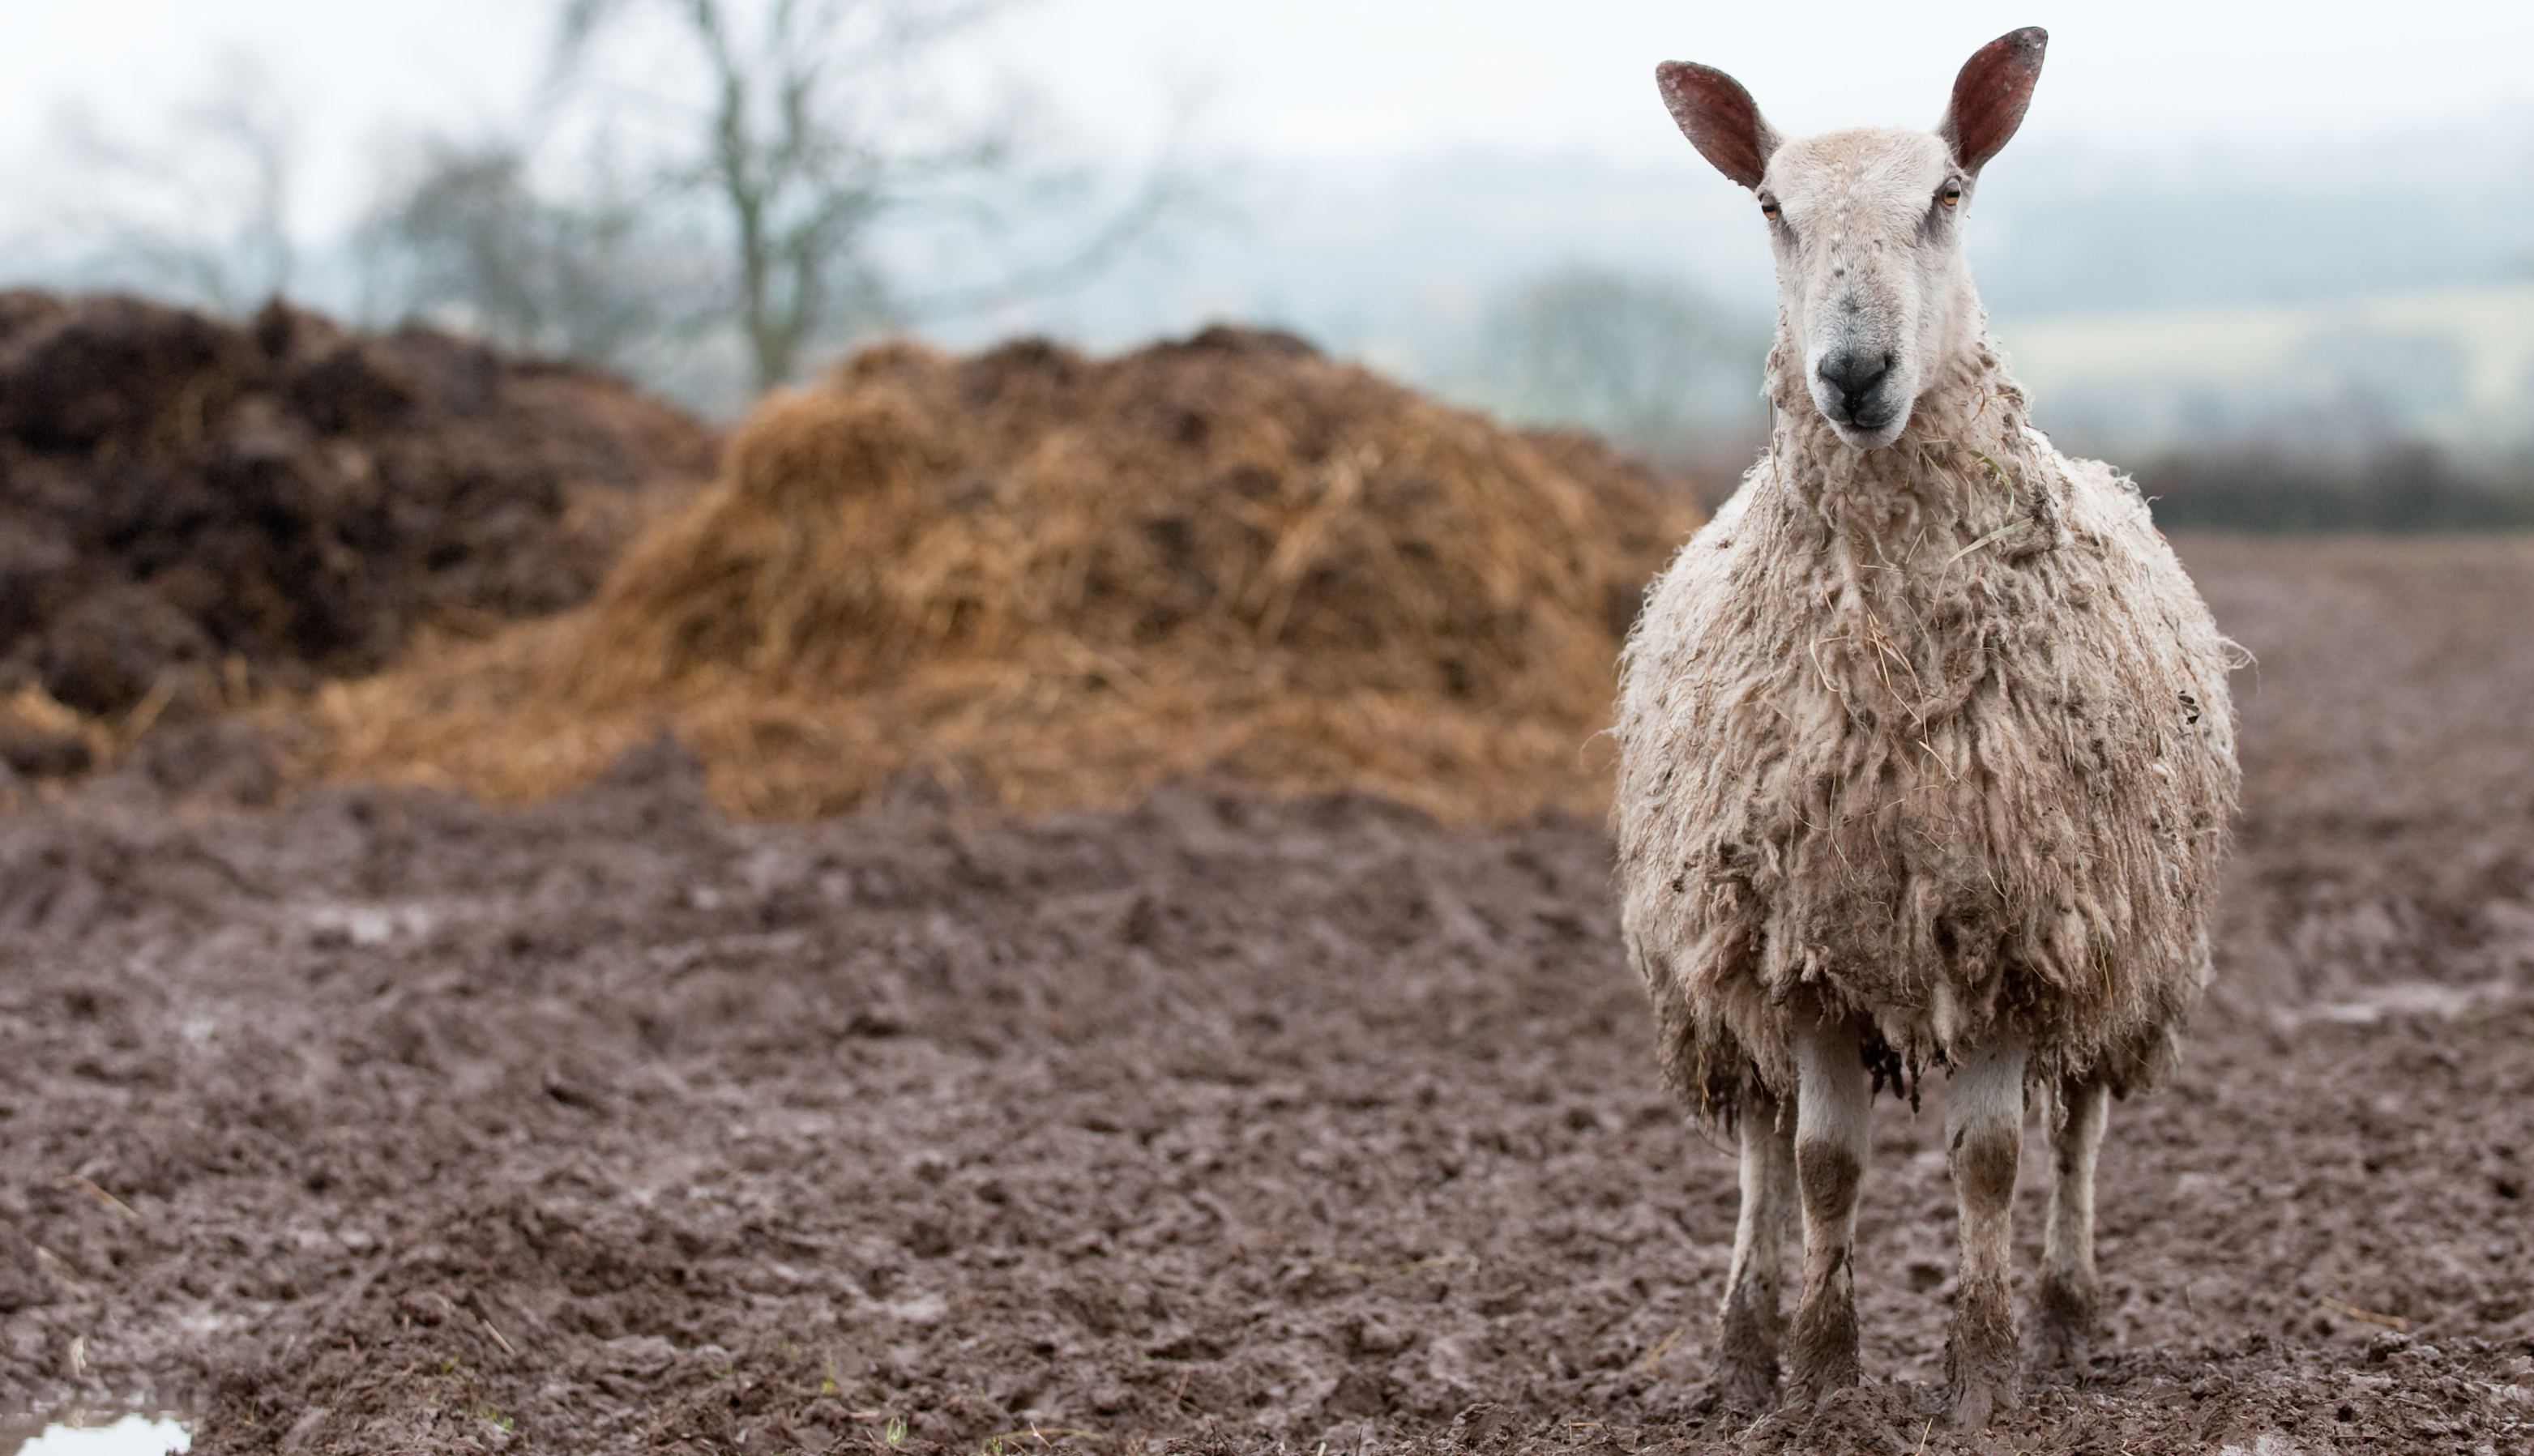 a sheep with mud caked all over its fleece